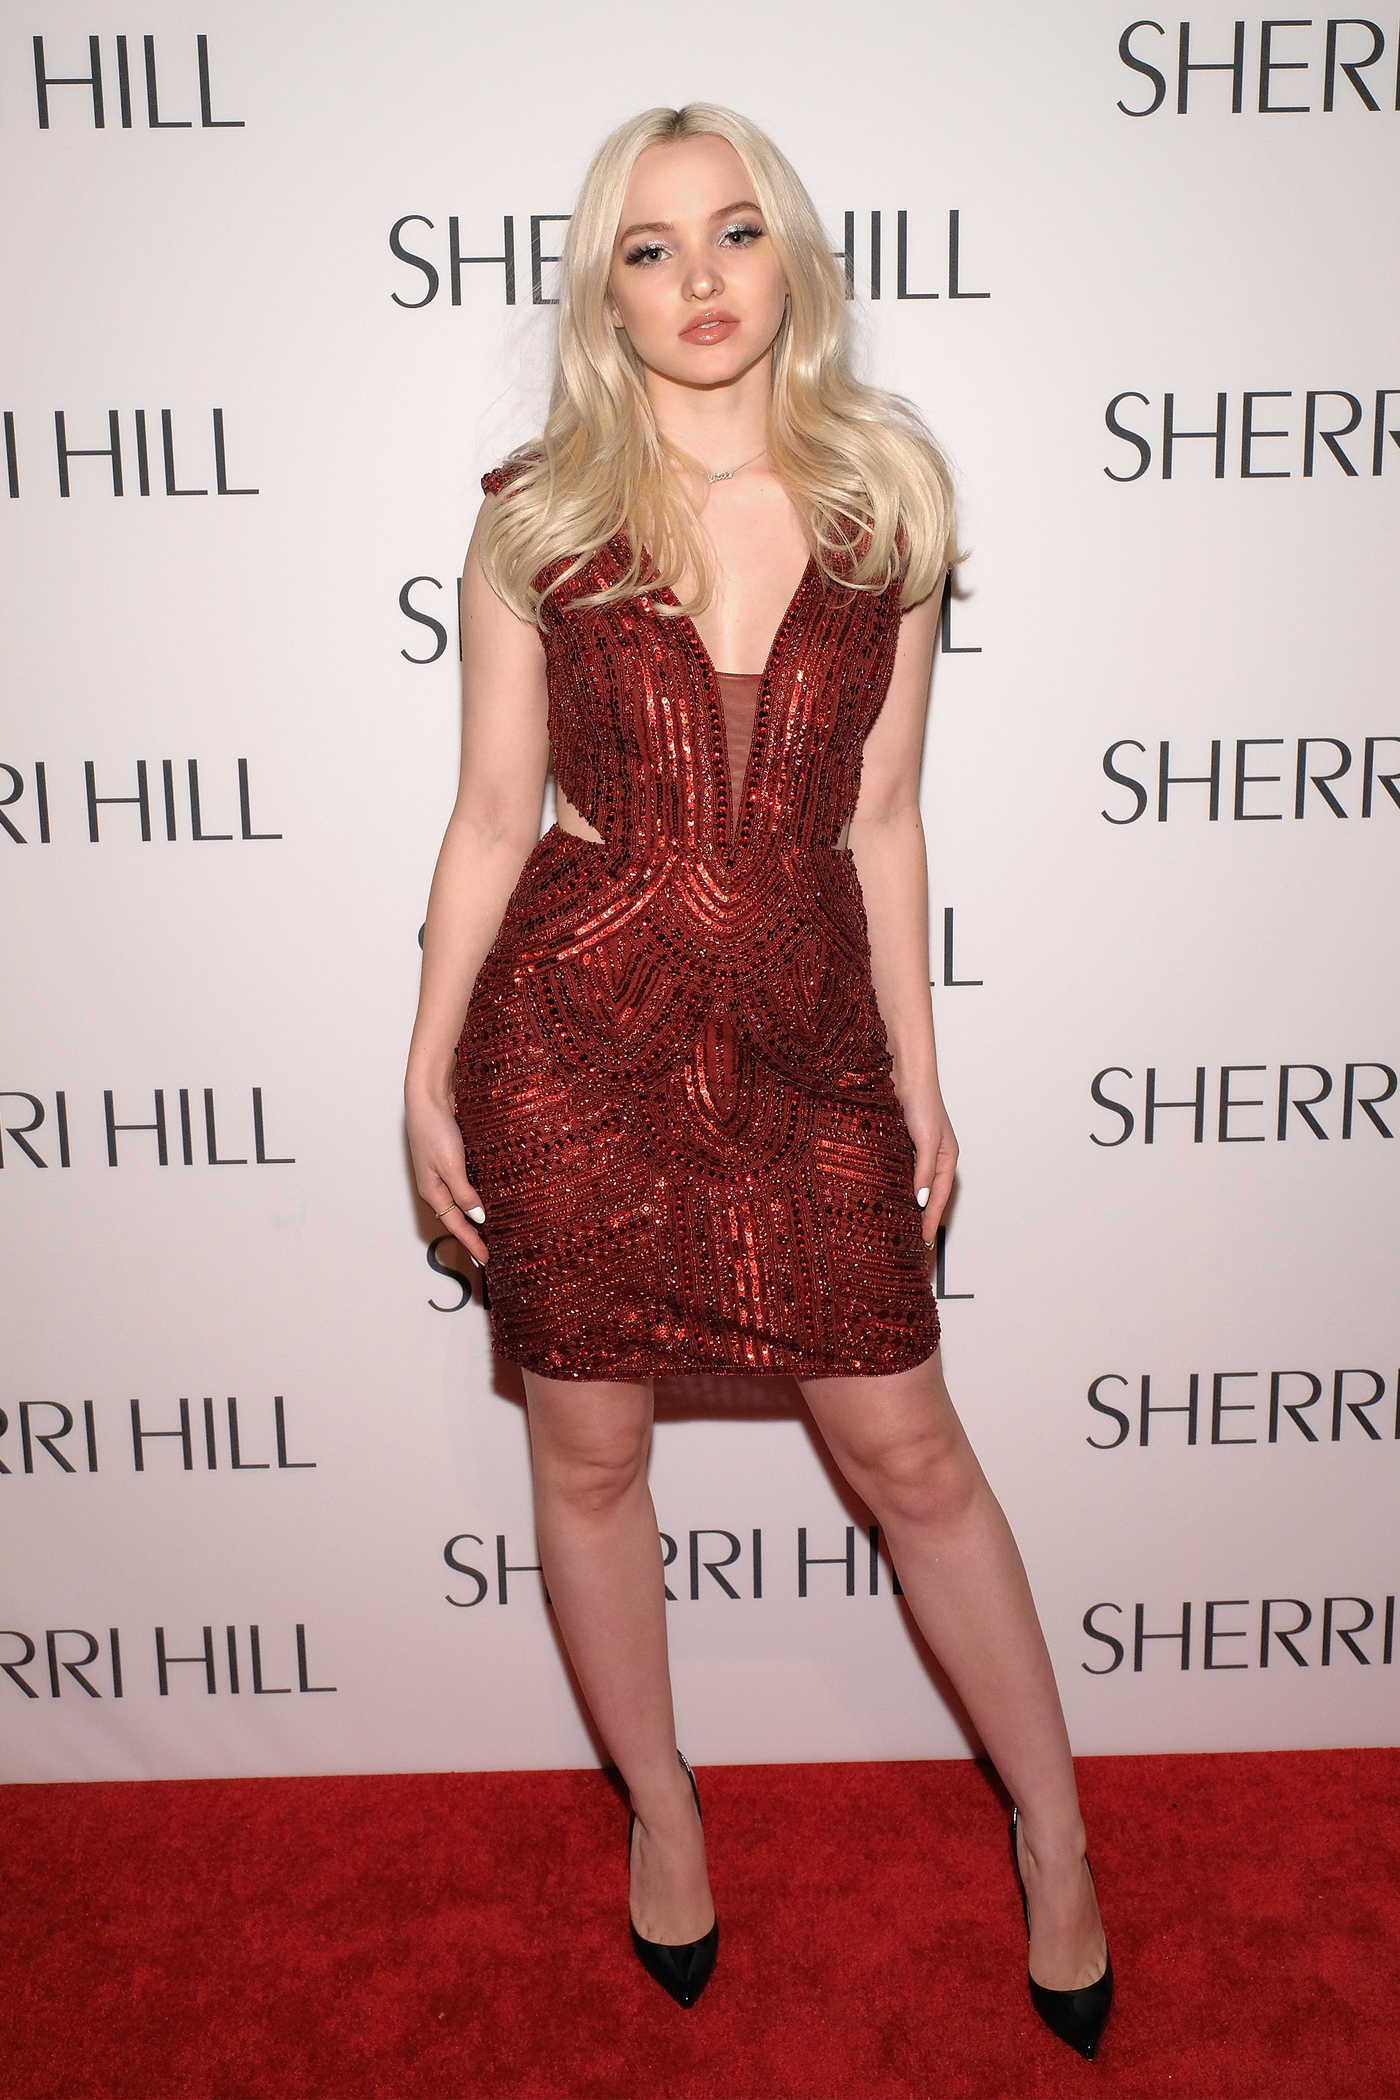 Dove Cameron at the Sherri Hill Fashion Show During the New York Fashion Week 02/13/2017